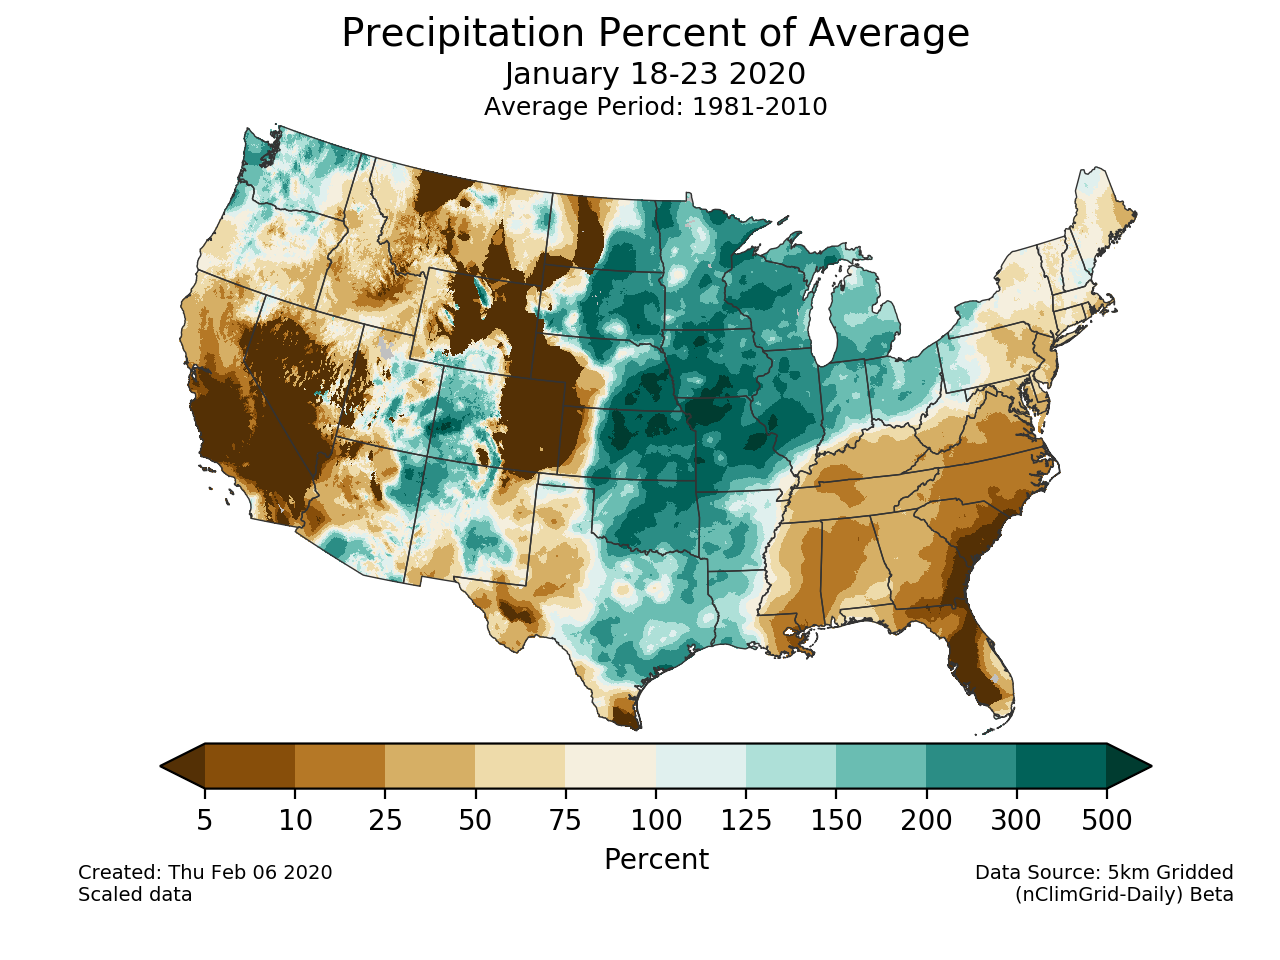 Precipitation anomalies (percent of normal) for the CONUS for January 18-23 2020